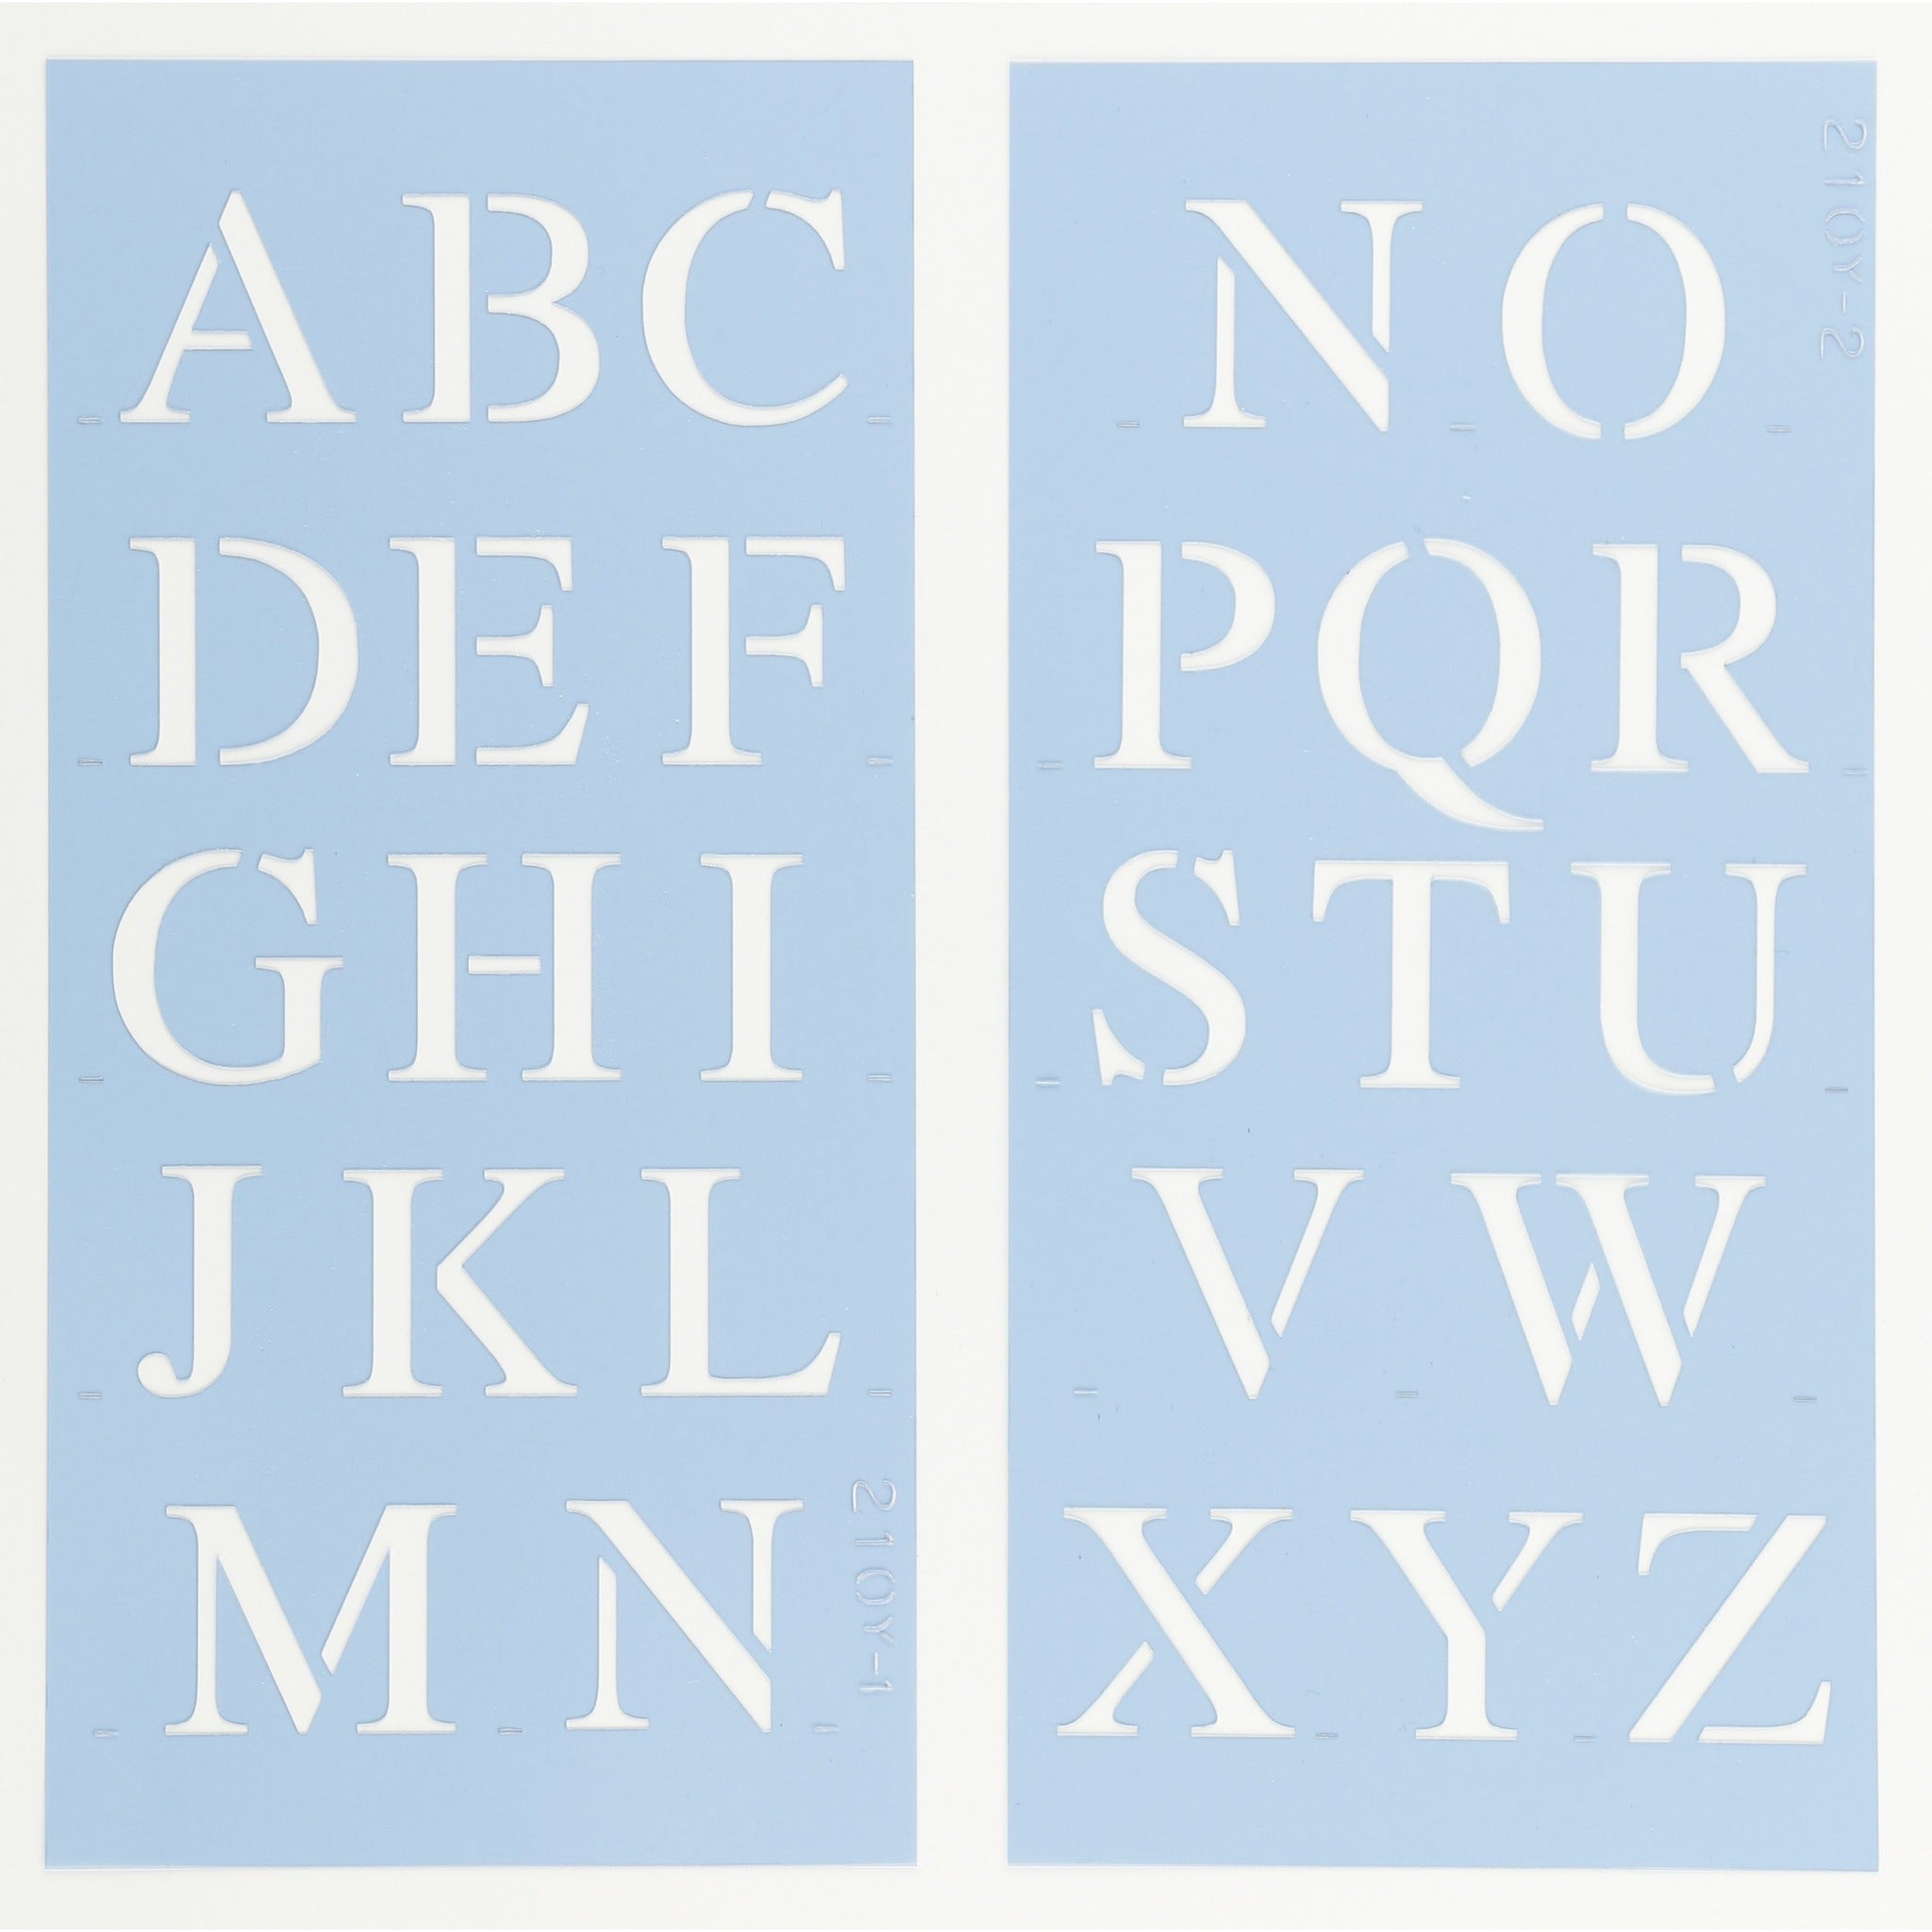 Times New Roman Letter Stencil Set by Crafty Stencils